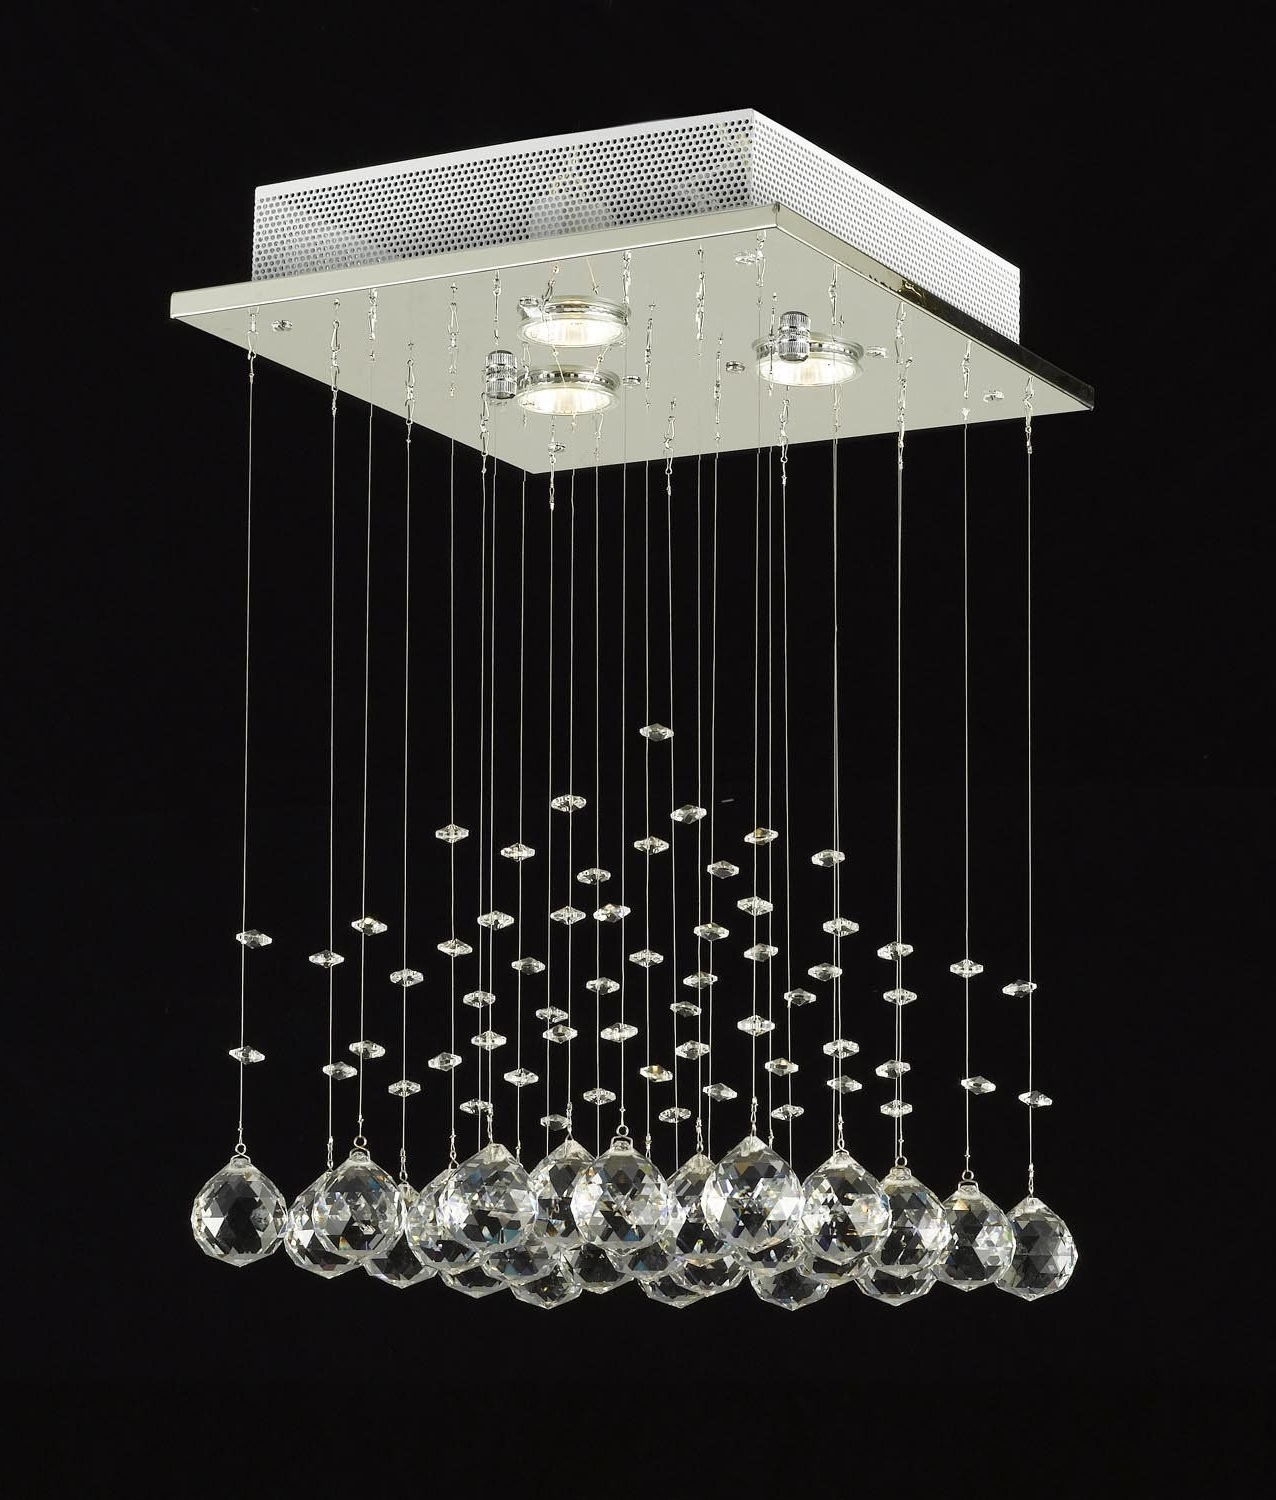 Crystal Ball, Chandeliers And Intended For Well Known Modern Light Chandelier (View 5 of 15)